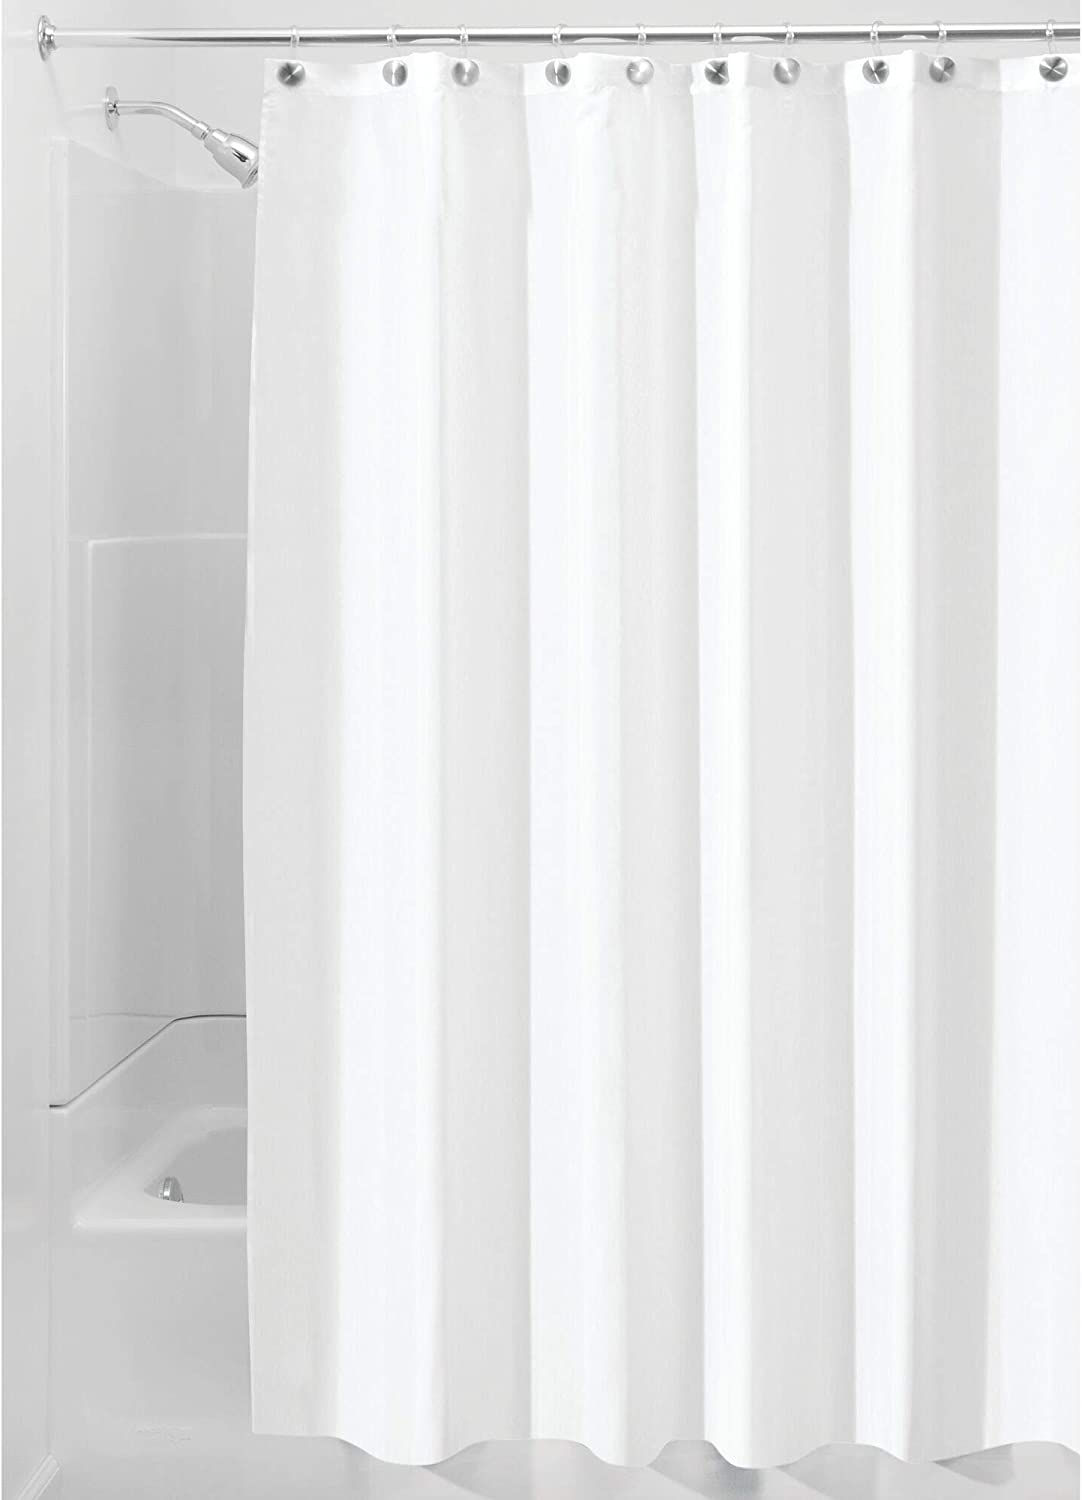 "iDesign Solid Fabric Bathroom Shower Curtain - 72"" x 72"", White: Home & Kitchen"